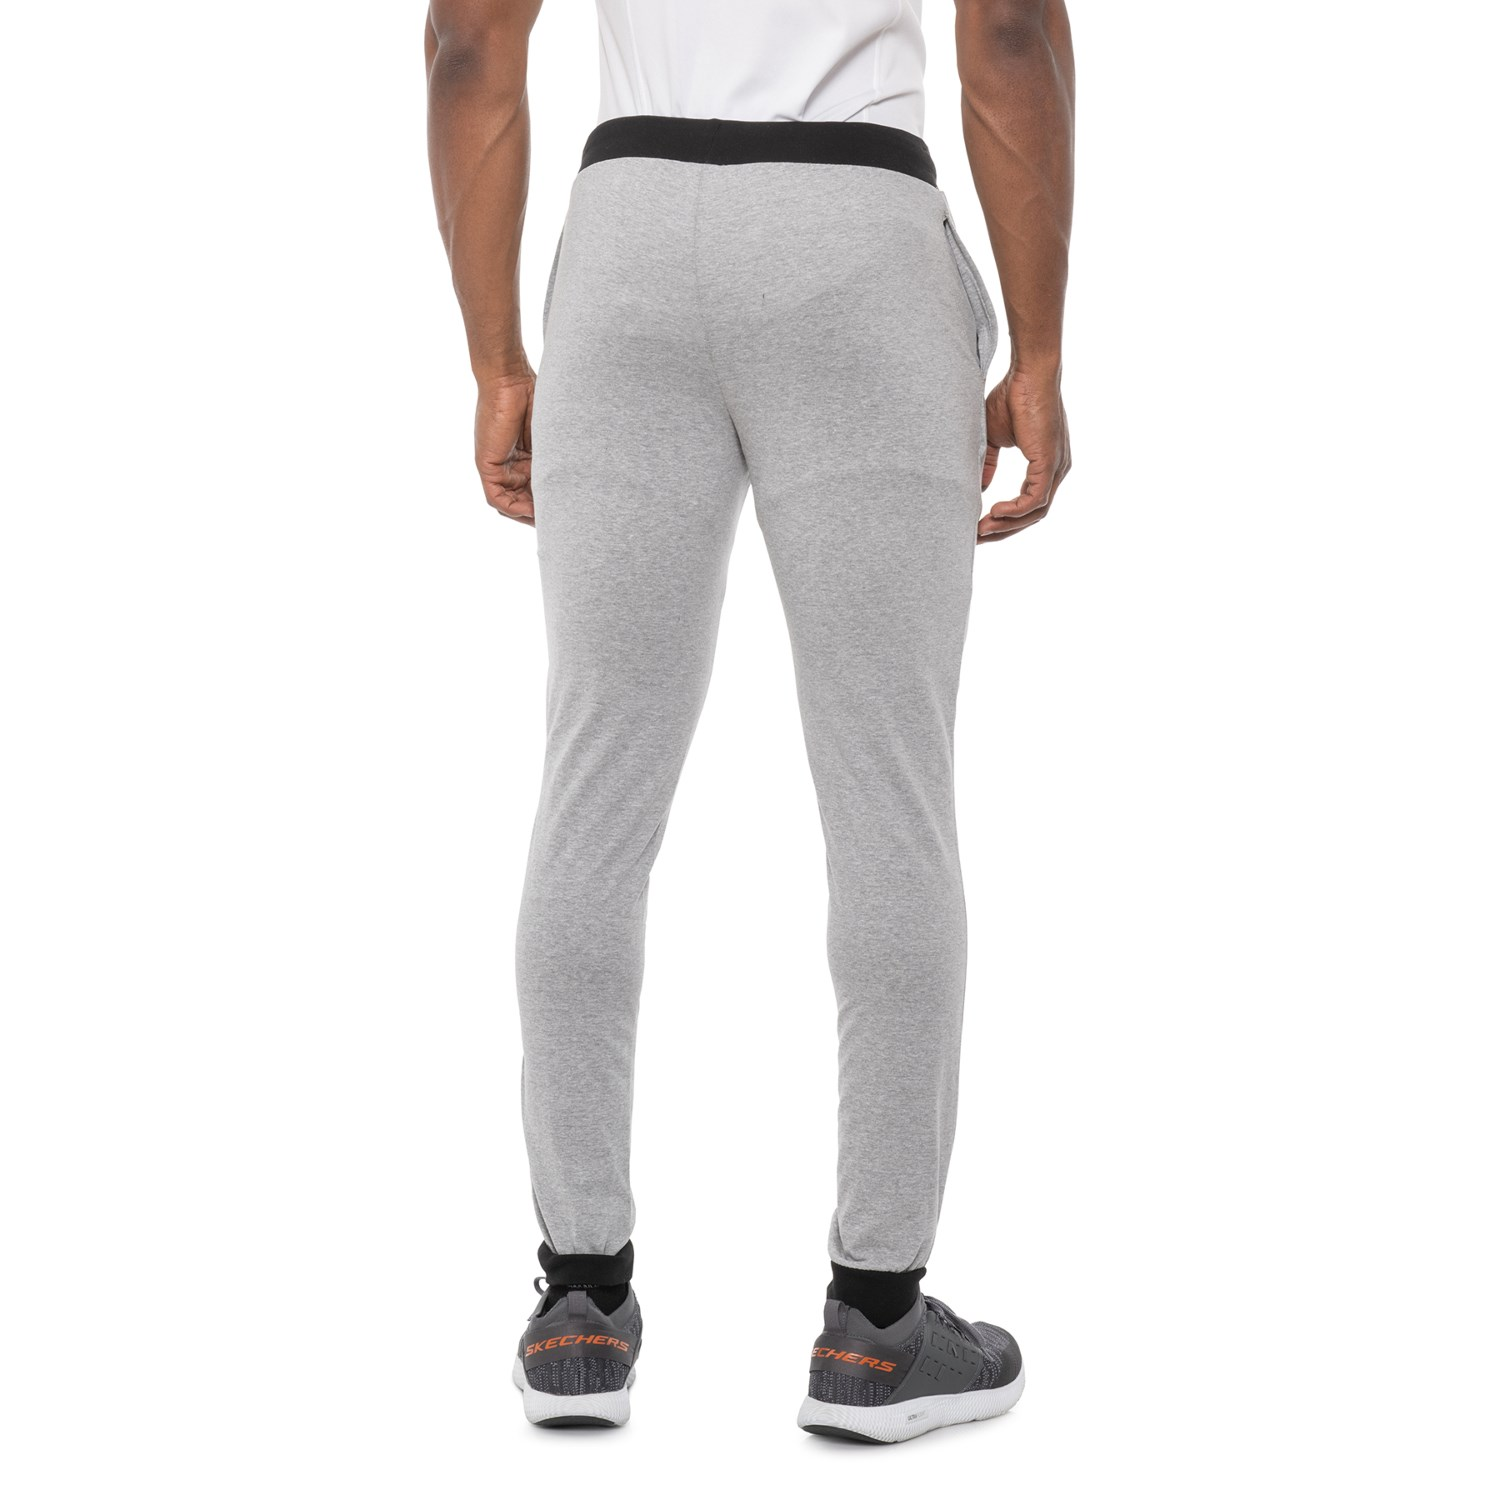 Fila Jersey Joggers (For Men) - Save 65%